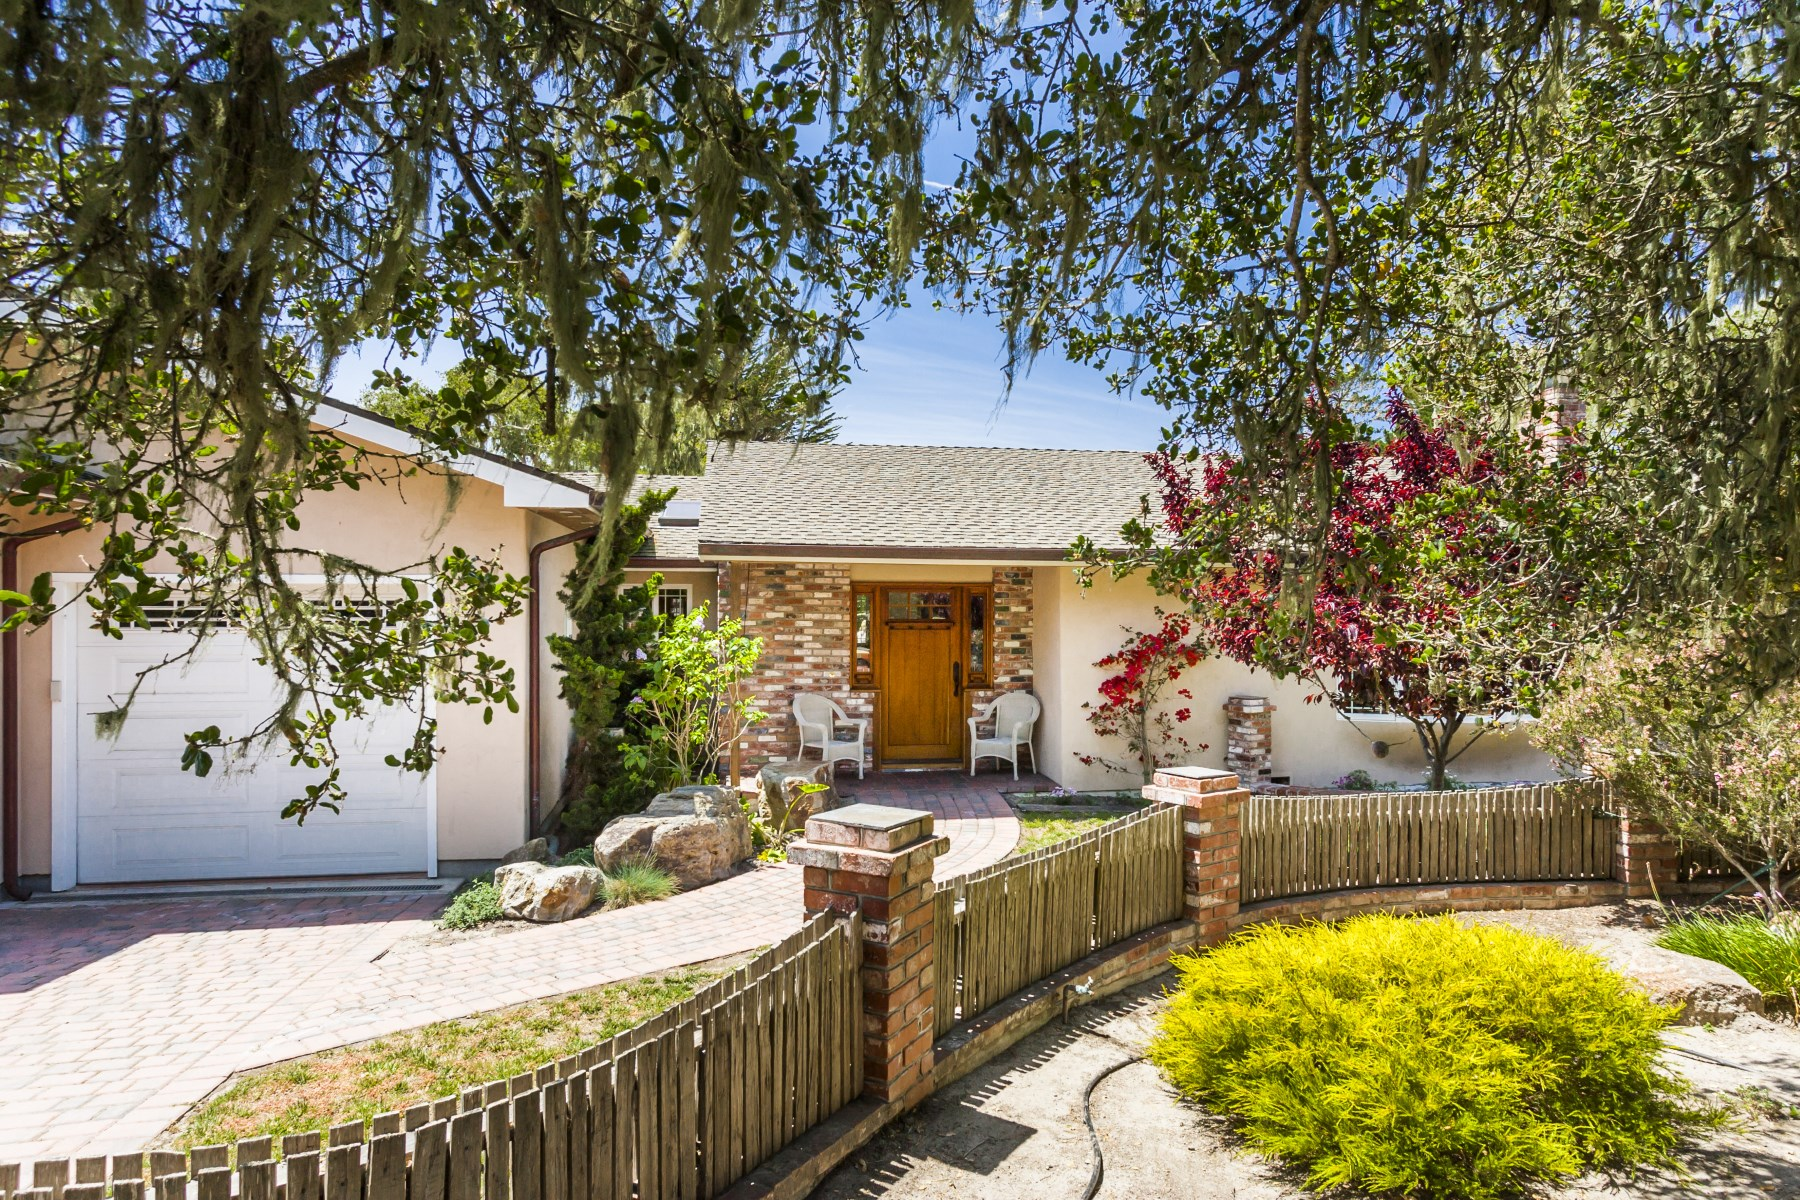 Single Family Home for Sale at Fabulous Location and Fabulous Home! 3030 Stevenson Dr Pebble Beach, California 93953 United States